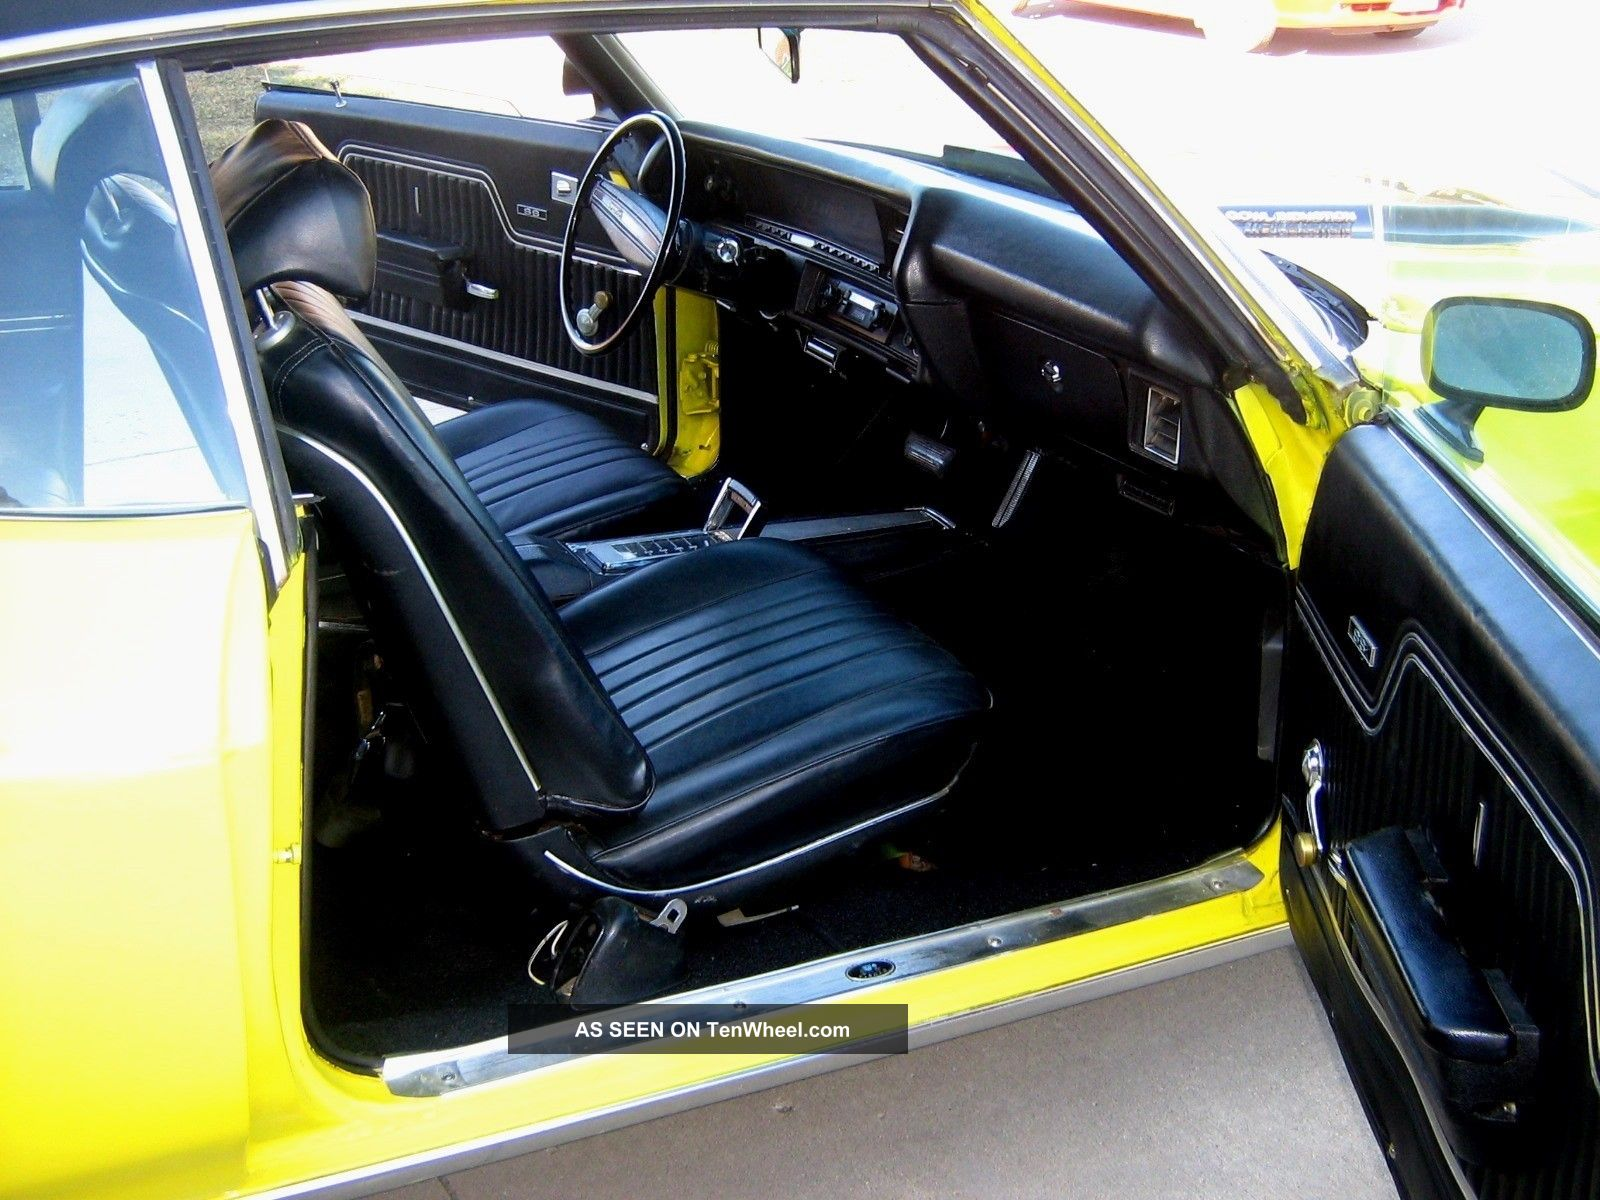 1972 two door 350 v8 chevelle ss yellow black interior s matching car. Black Bedroom Furniture Sets. Home Design Ideas